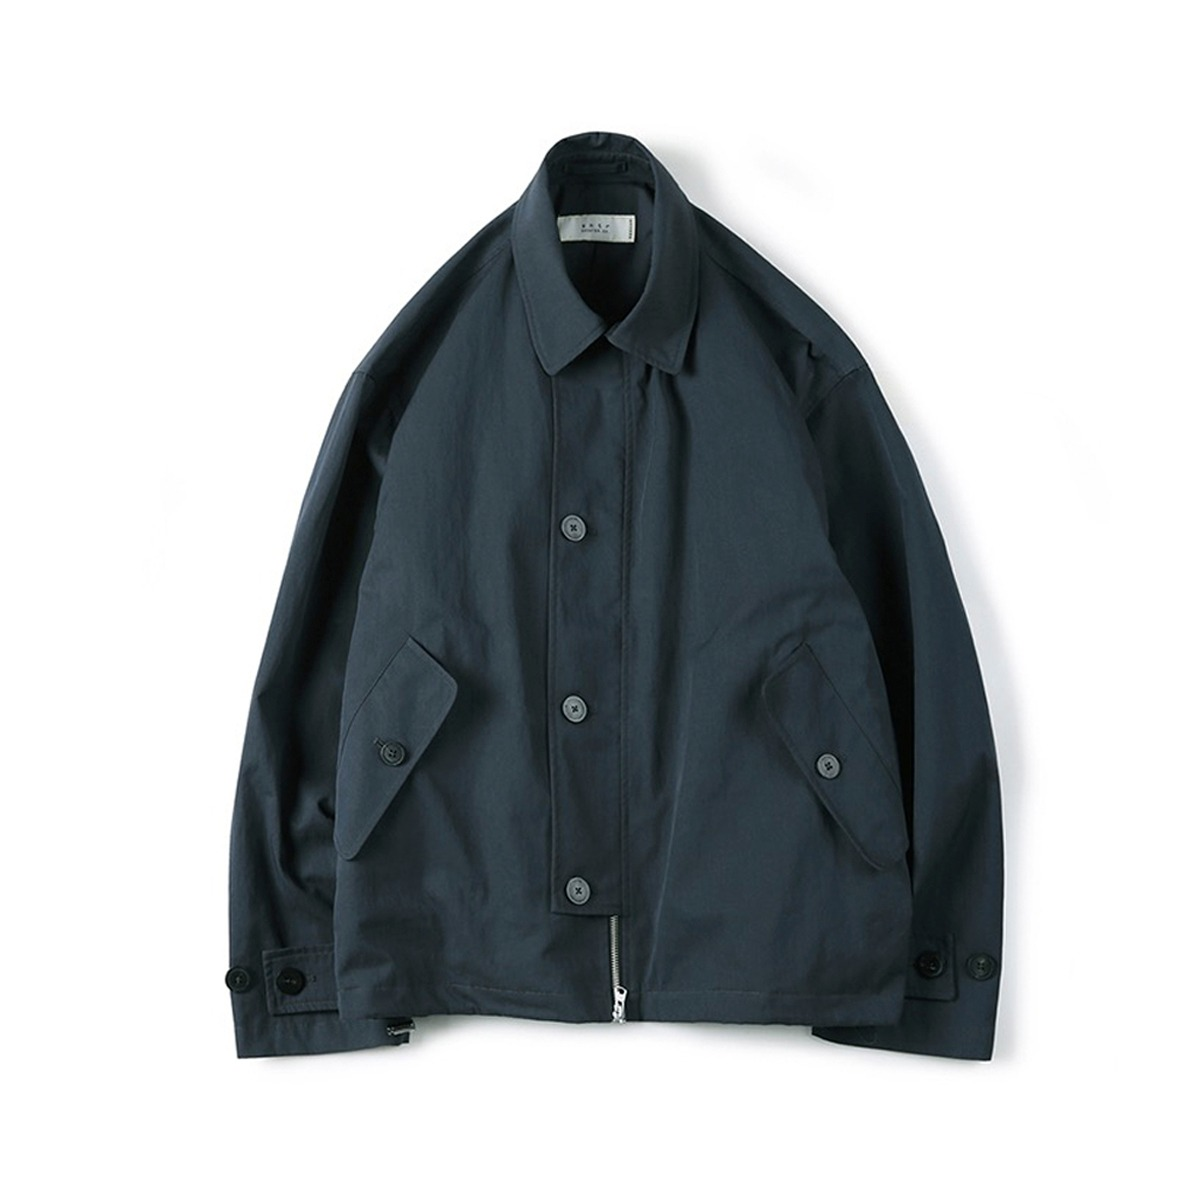 [SHIRTER] HIGH DENSITY TWILL GABARDINE JACKET 'BLUE GREEN'